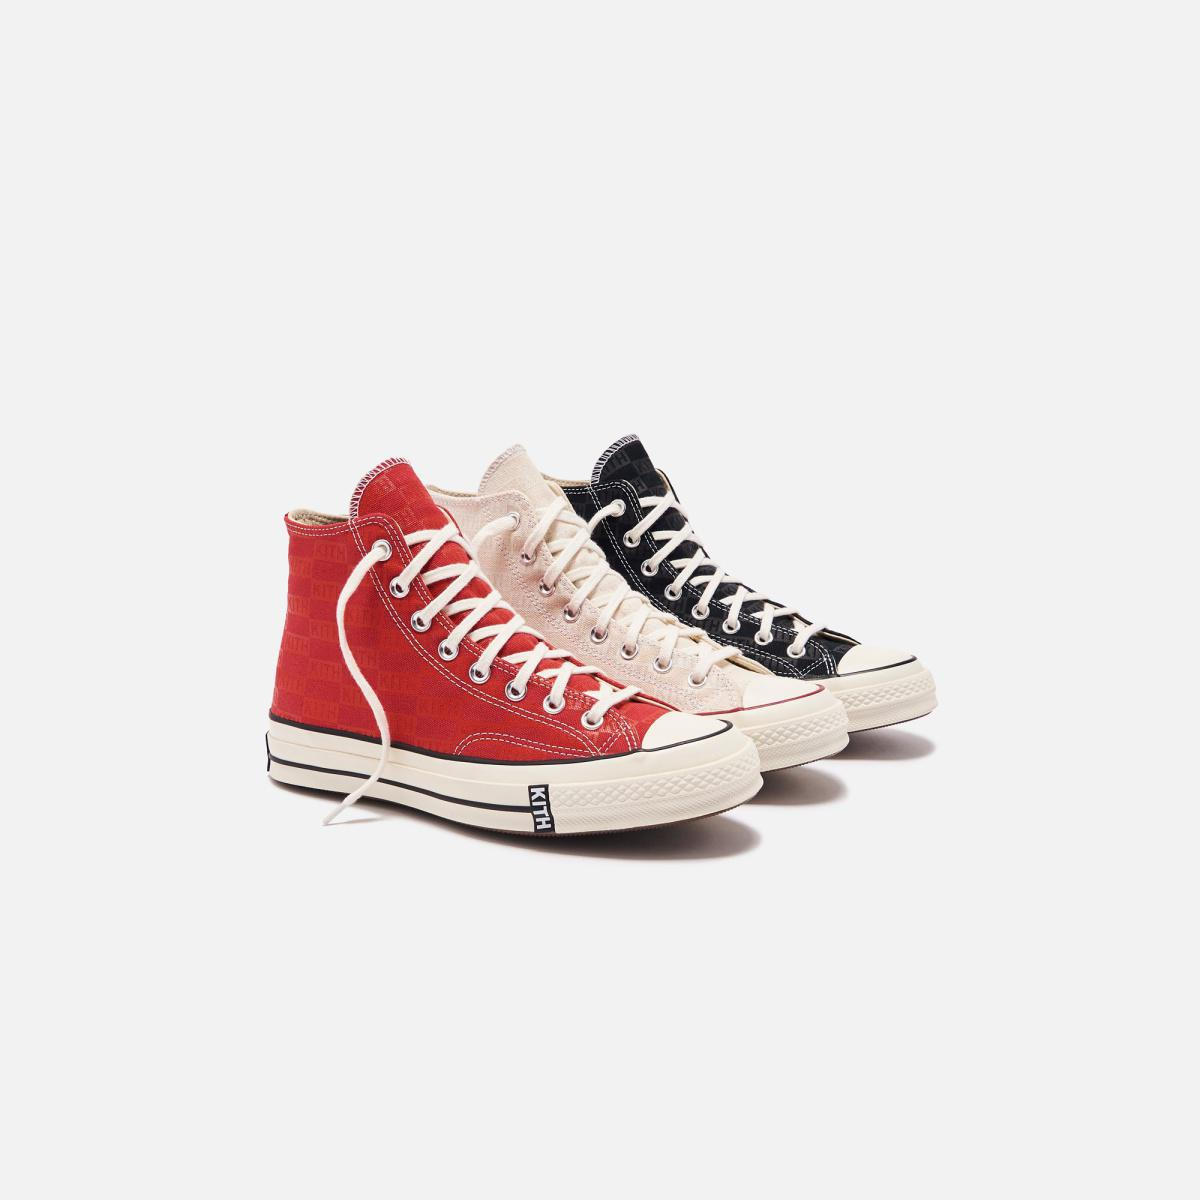 KITH X CONVERSE CHUCK TAYLOR 1970 RED